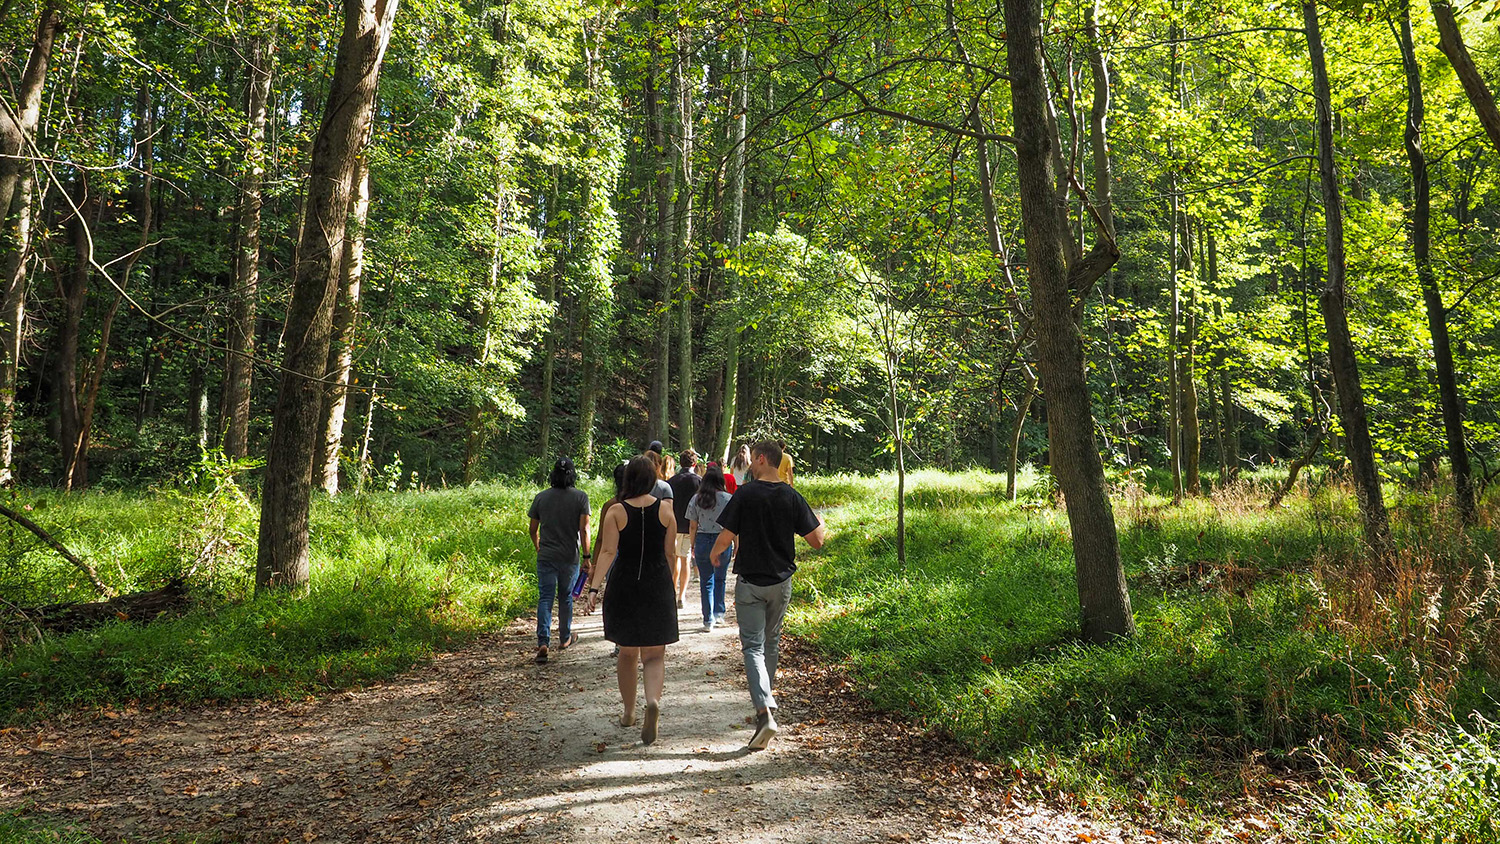 Students walk through the forest at the NC Art Museum park